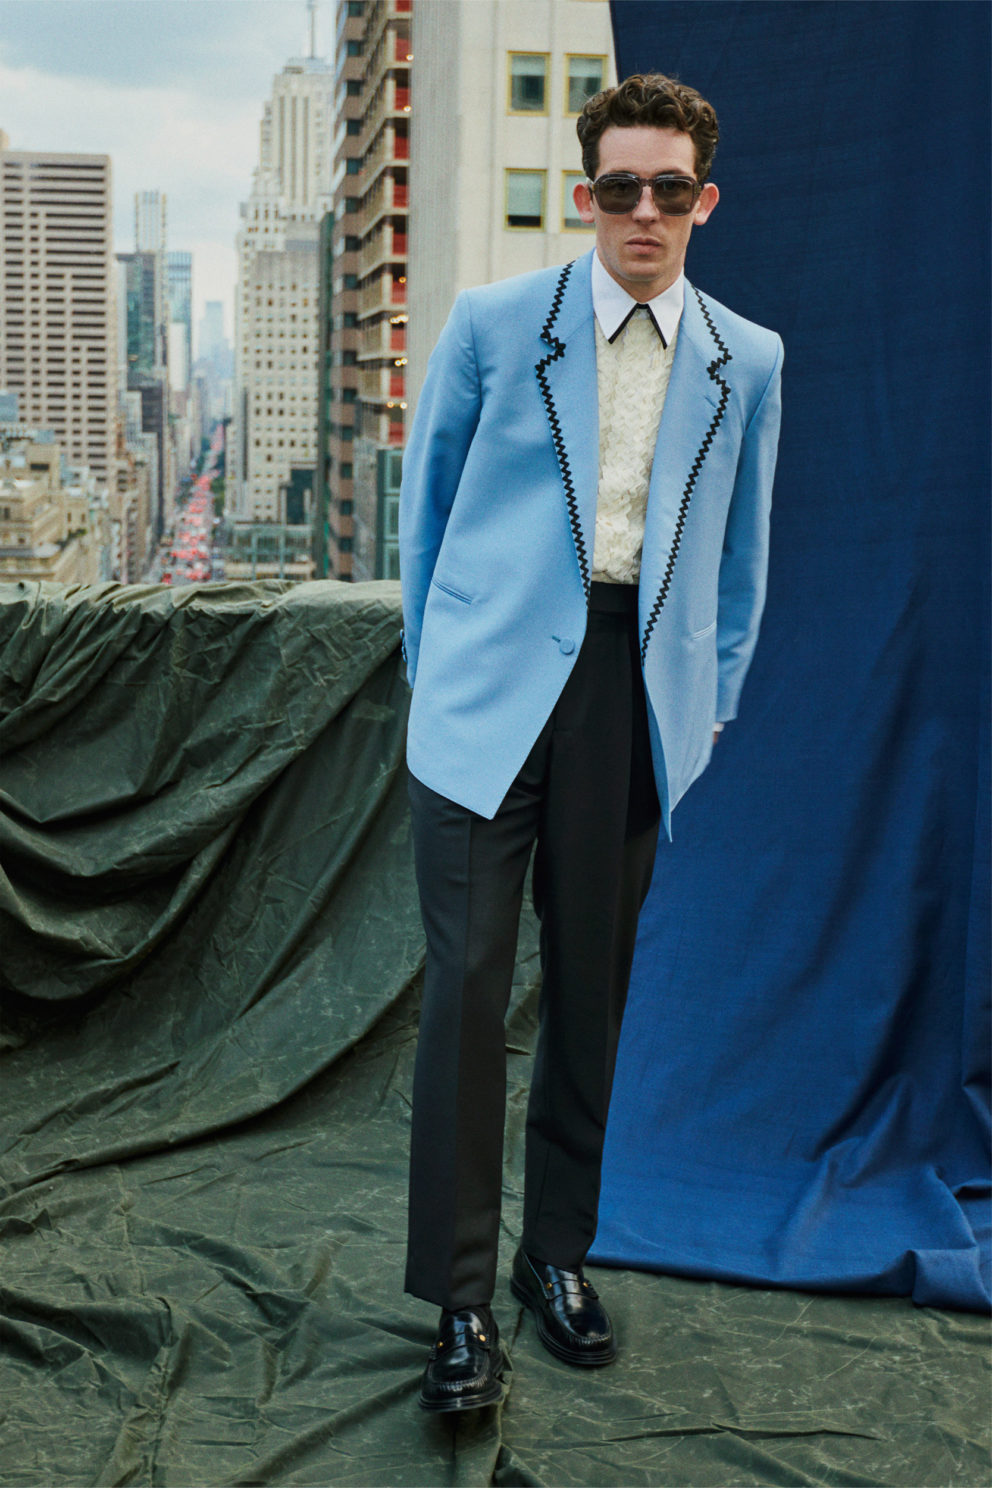 210914 0020 Met Dunhill Josh Oconnor 023 By Christian Hogstedt